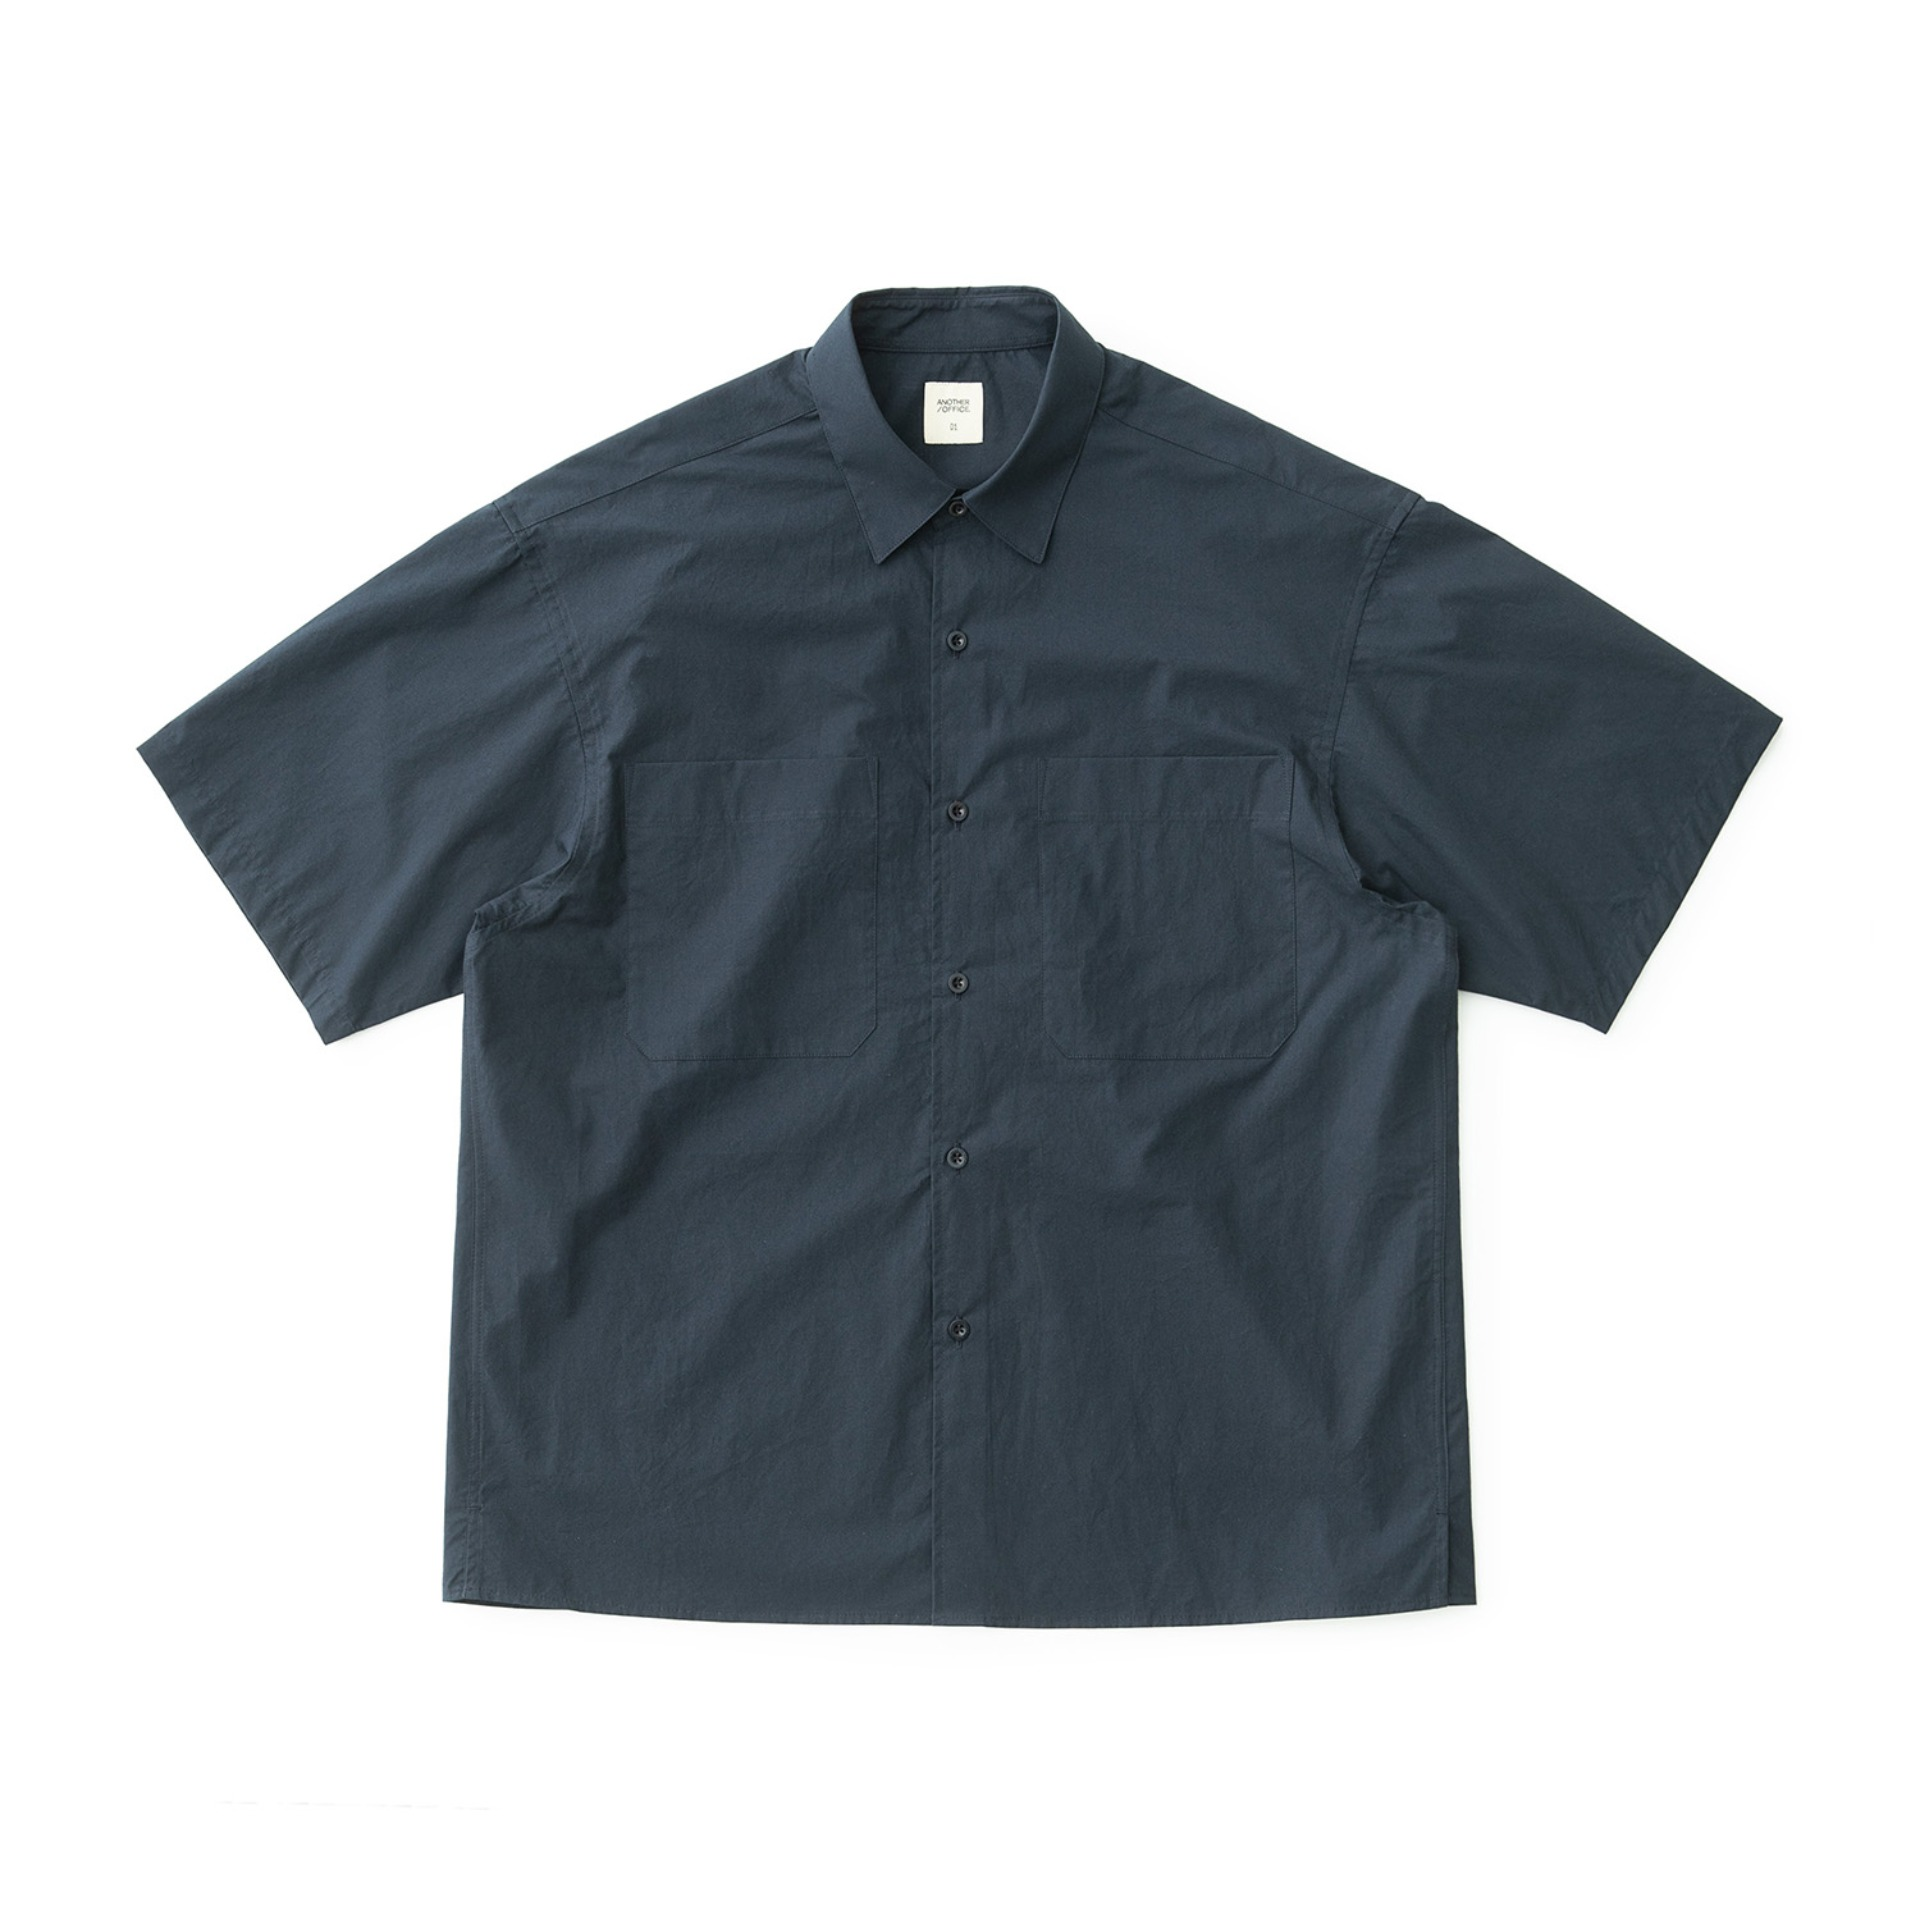 WRITER SHIRT (Dark Navy)